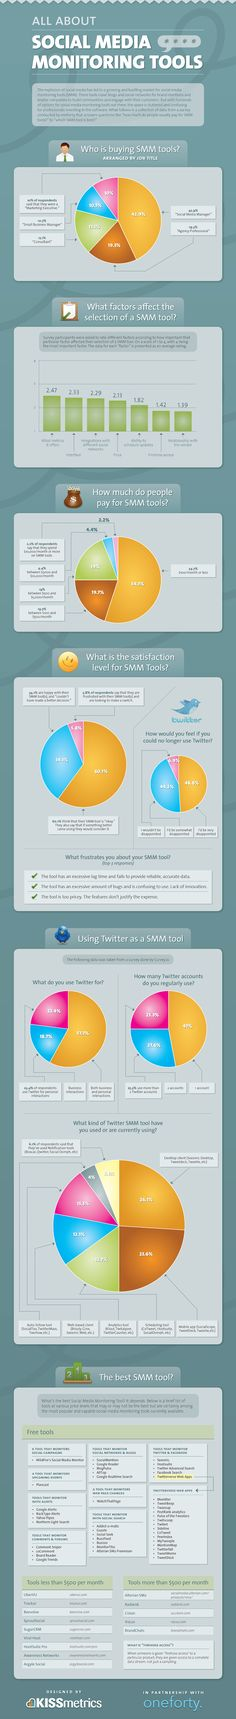 All About #SocialMedia #Monitoring Tools #infographic